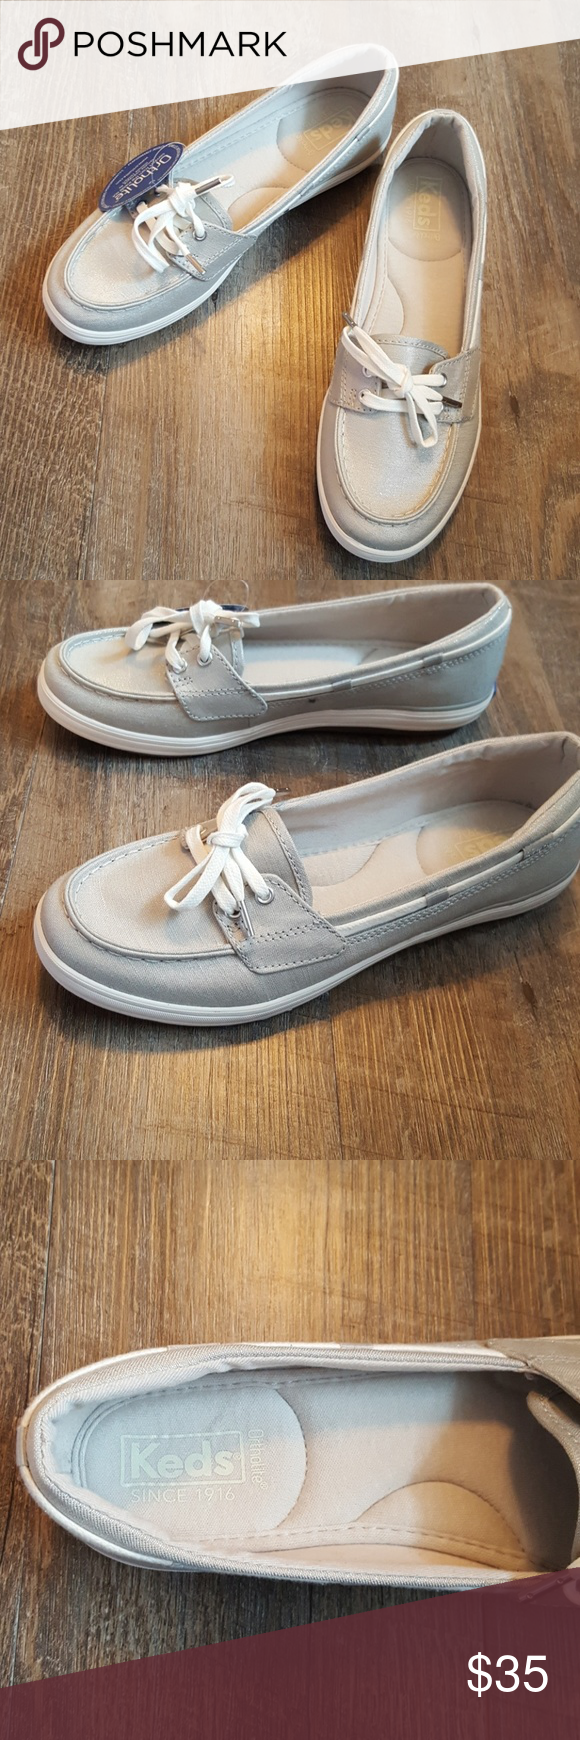 22c2b97ead Keds Glimmer Gray/Silver Boat Shoes Size 7 1/2 New Keds Glimmer Boat Shoe  Gray/Silver Size: 7 1/2 Ortholite comfort Wicks away moisture Odor  inhibiting New ...